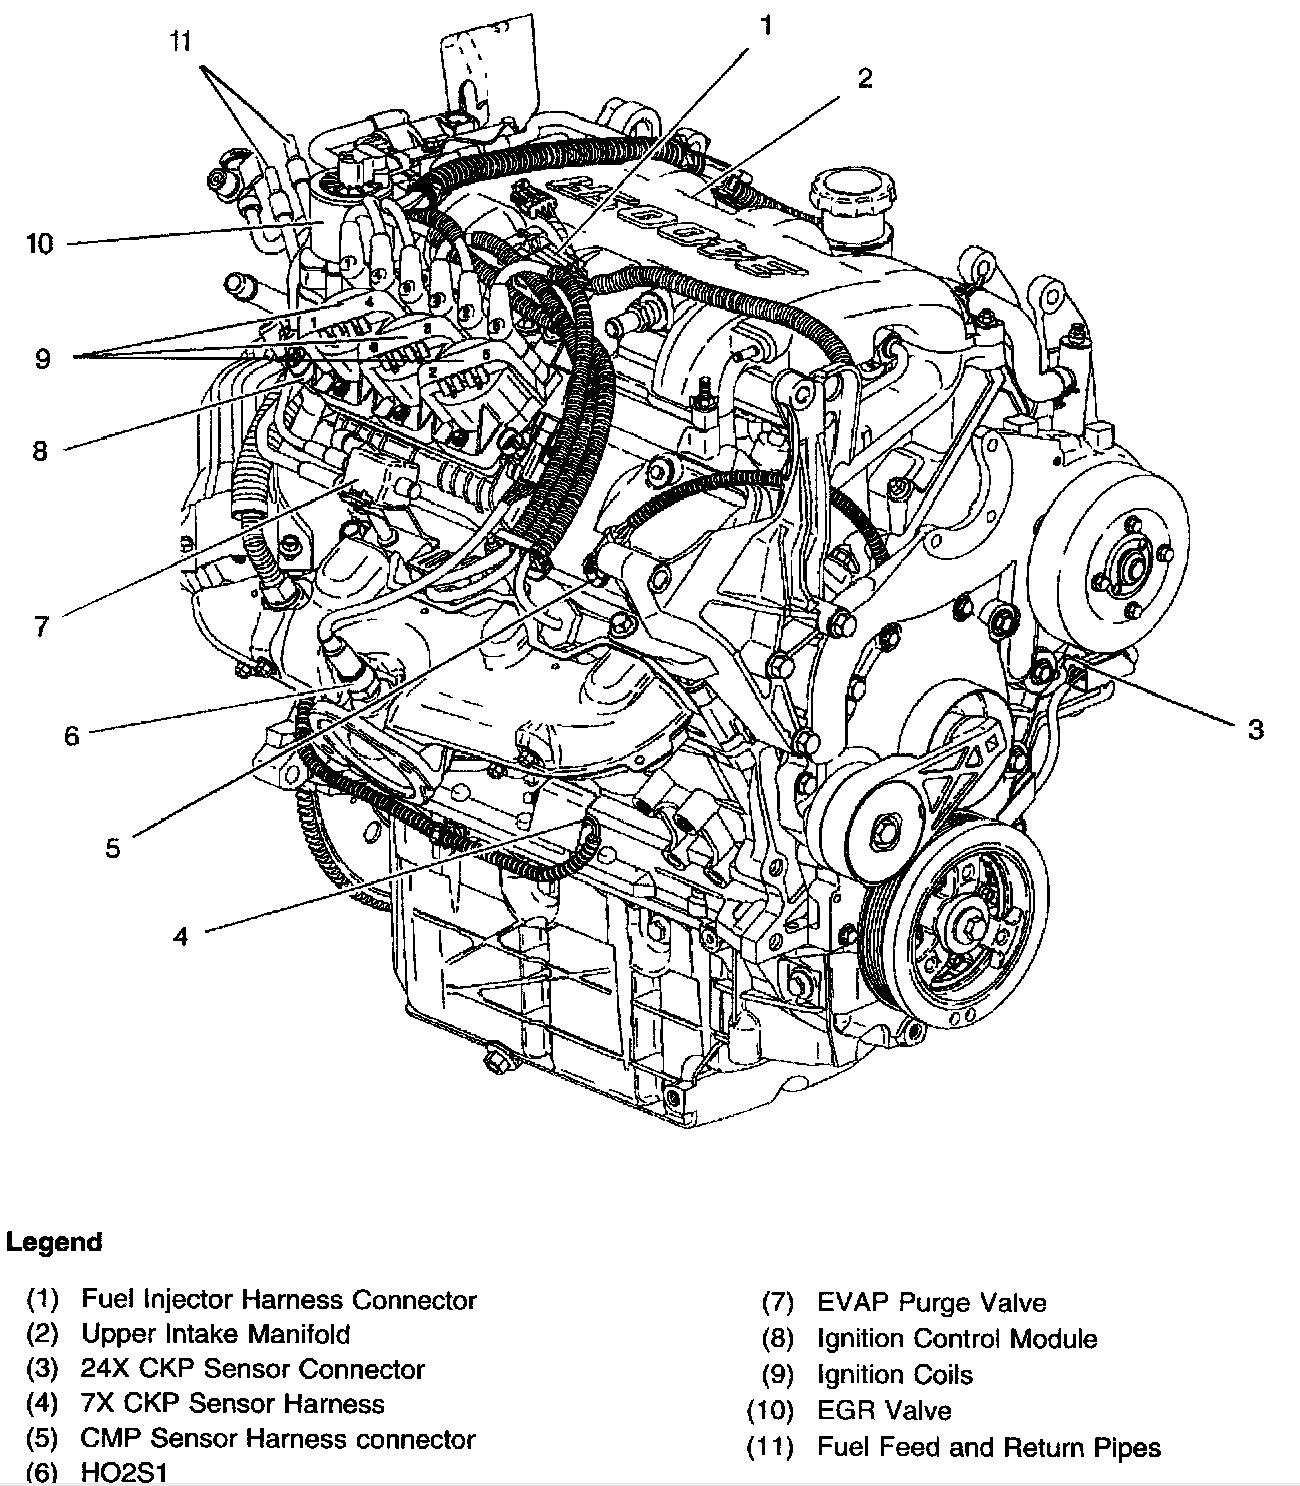 fire truck wiring diagram free picture schematic diagram of a 3 1 chev engine wiring schematic diagram www  chev engine wiring schematic diagram